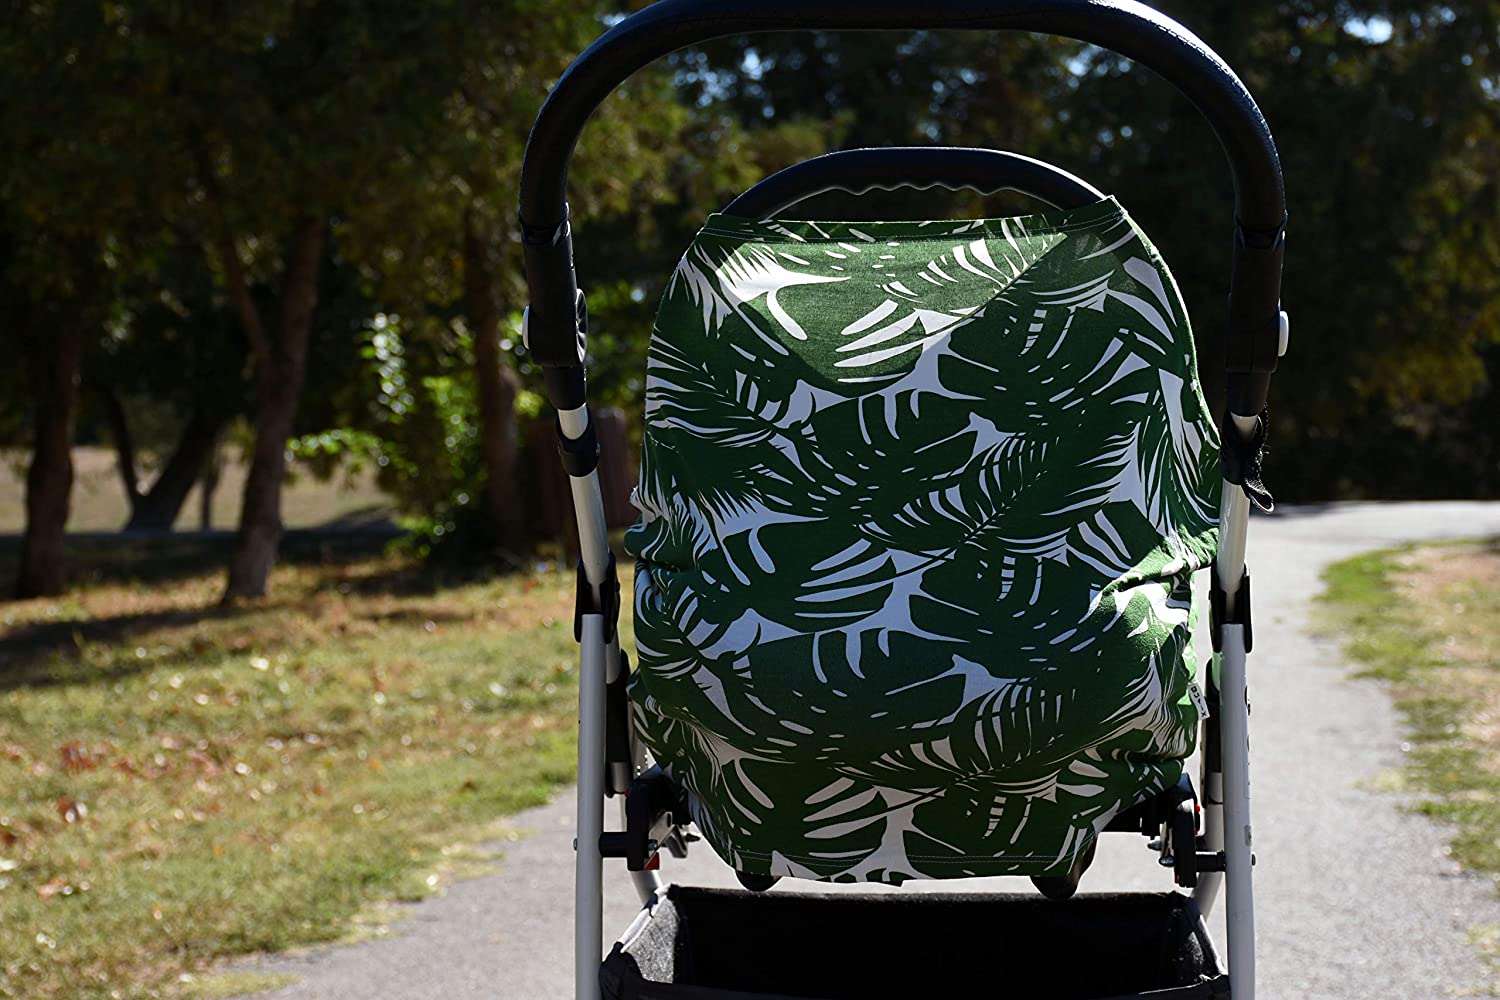 Stroller Nursing Cover Breastfeeding Cover carseat Canopy Stretchy car seat Cover Palm Leaves Shopping Cart Carseat Covers for Girls and Boys Baby car seat Cover Multi Use Nursing Cover